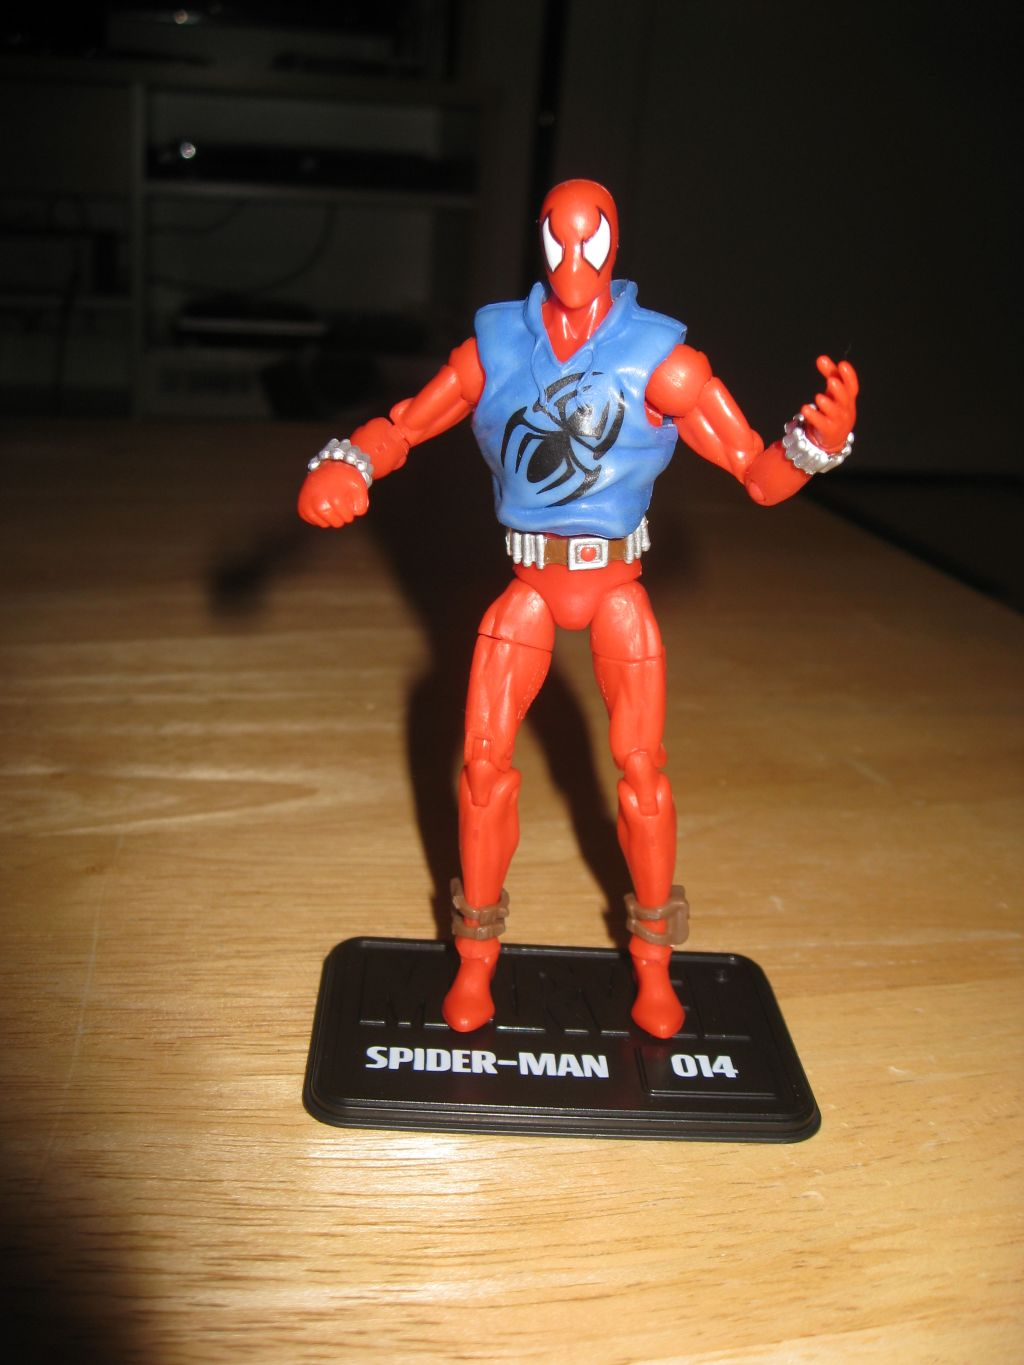 lego scarlet spider decals - photo #15